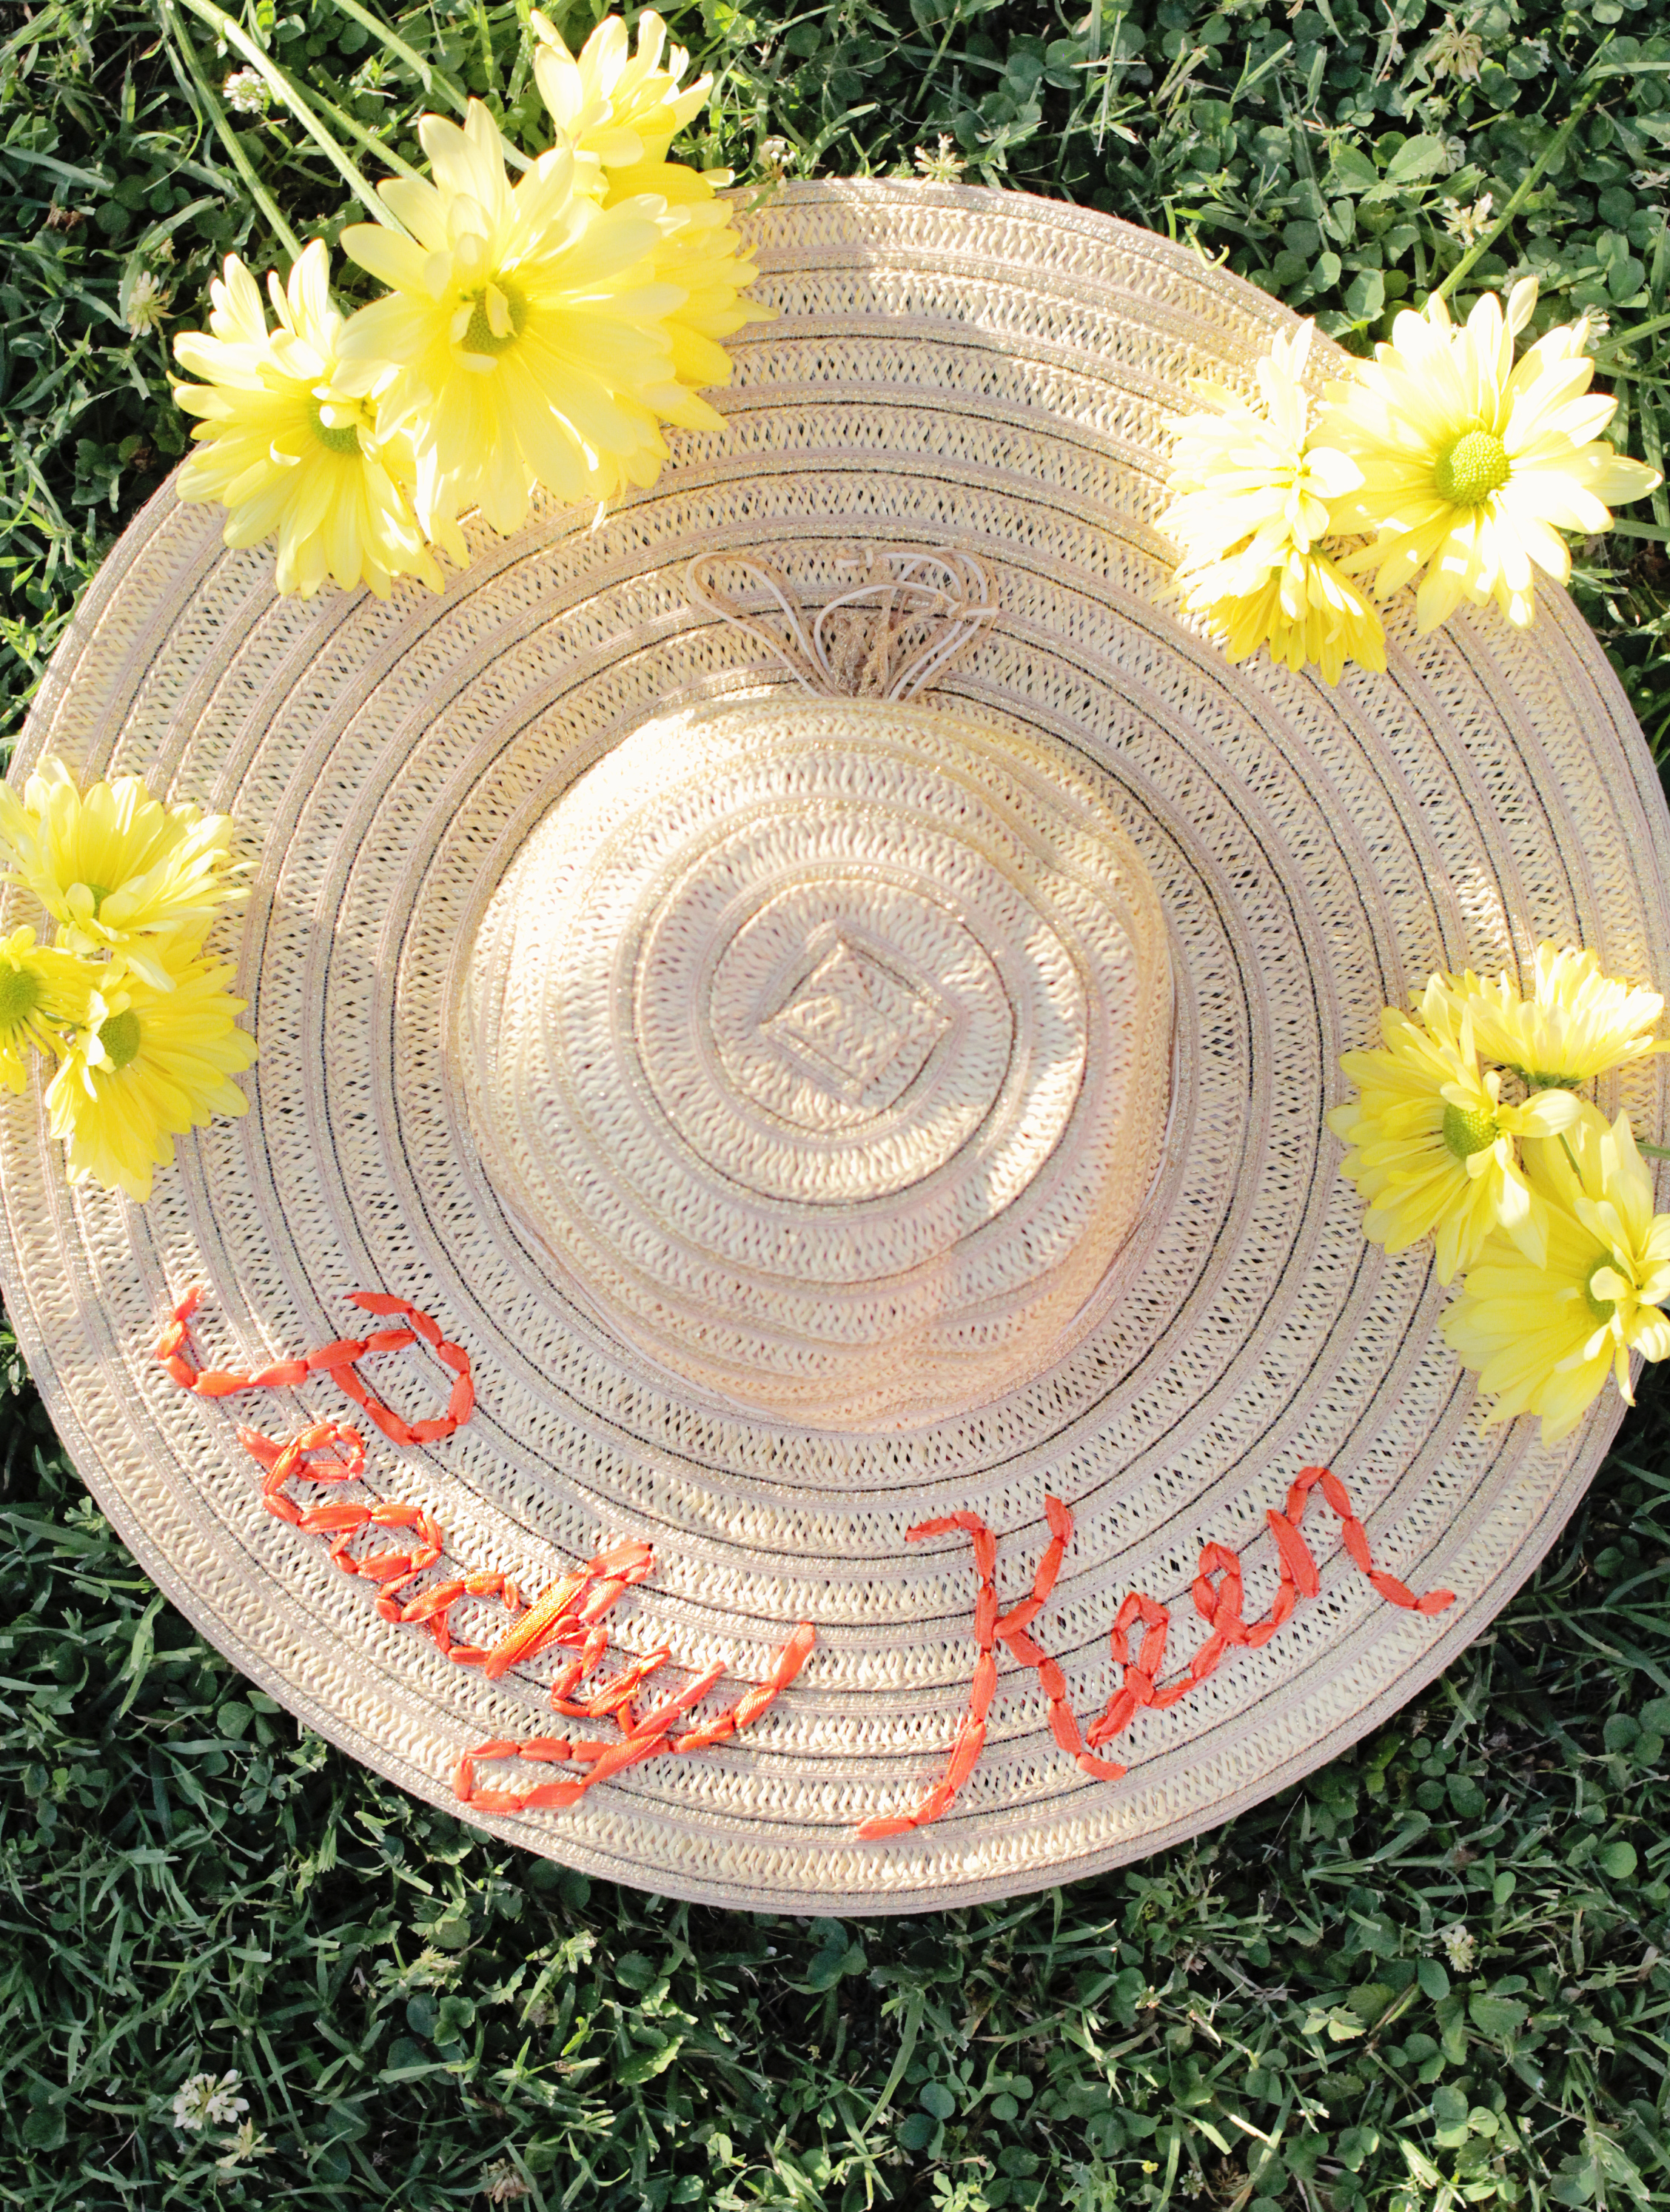 Darling embroidered hat DIY